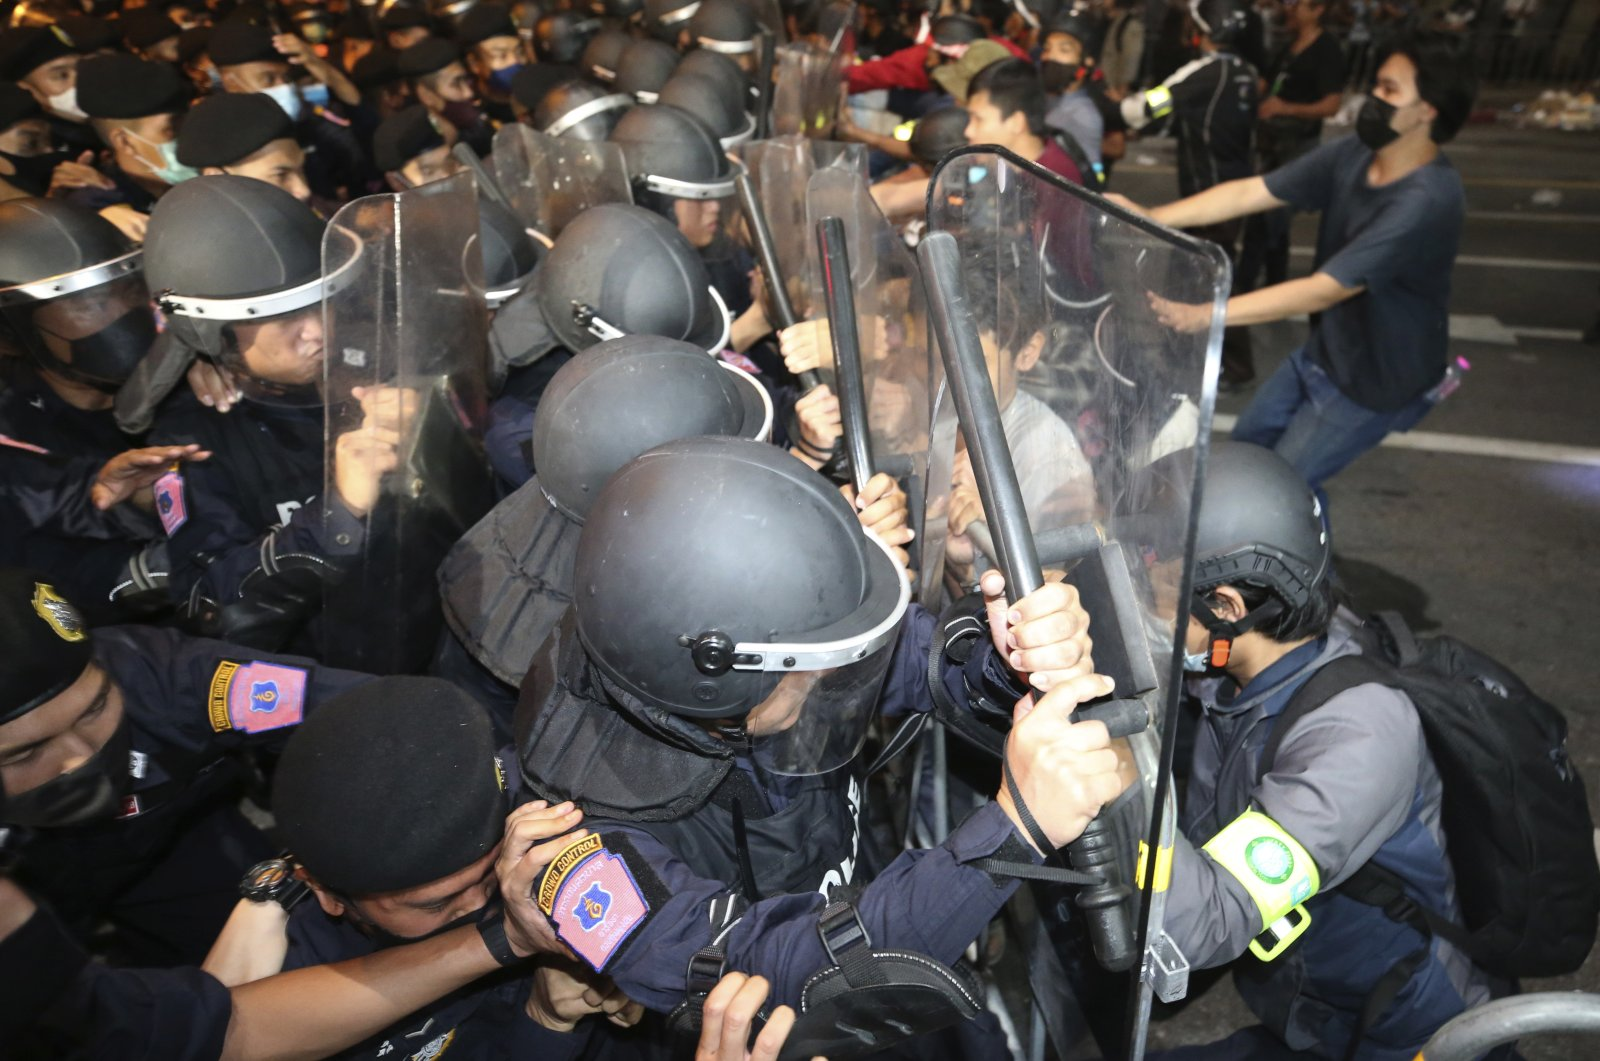 Pro-democracy protesters push Thai policemen with riot shields during a demonstration in Bangkok, Thailand, Thursday, Oct. 15, 2020. (AP Photo)